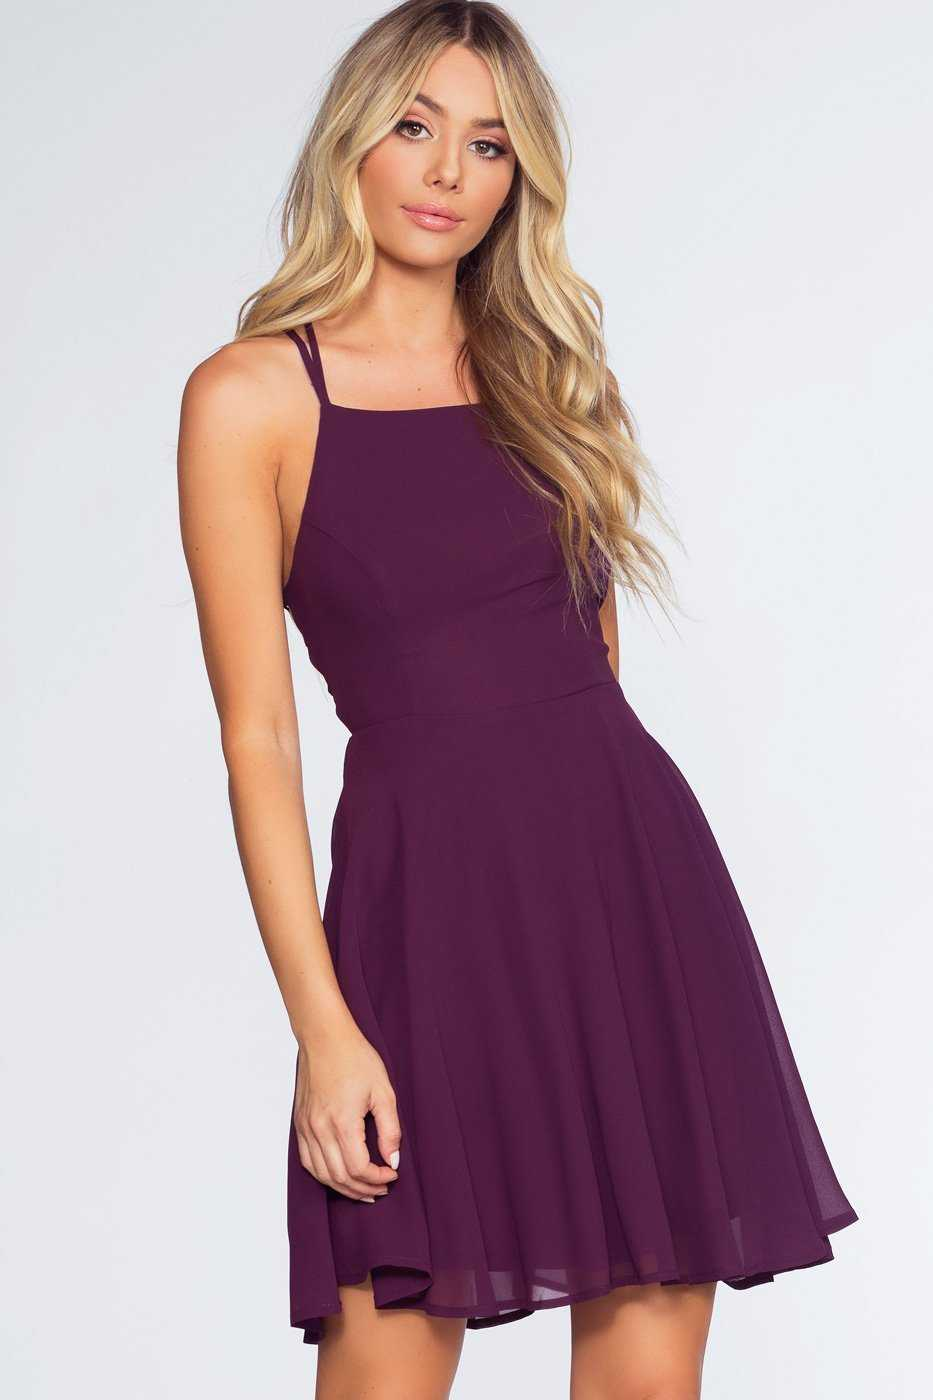 Dresses - Roxy Dress - Eggplant